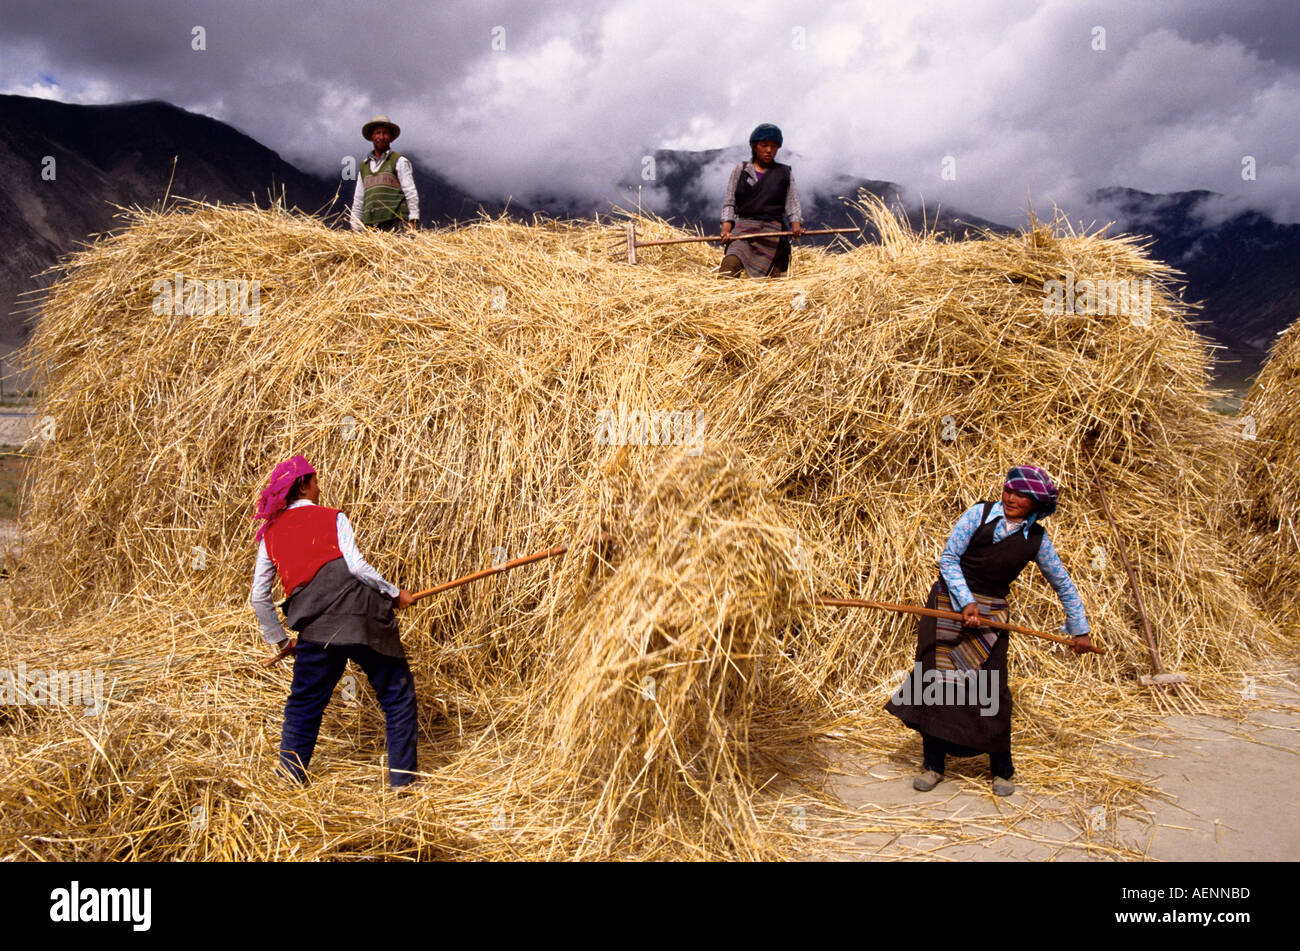 Lhasa Valley Tibet China Farm women pitching straw during autumn barley harvest  Stock Photo